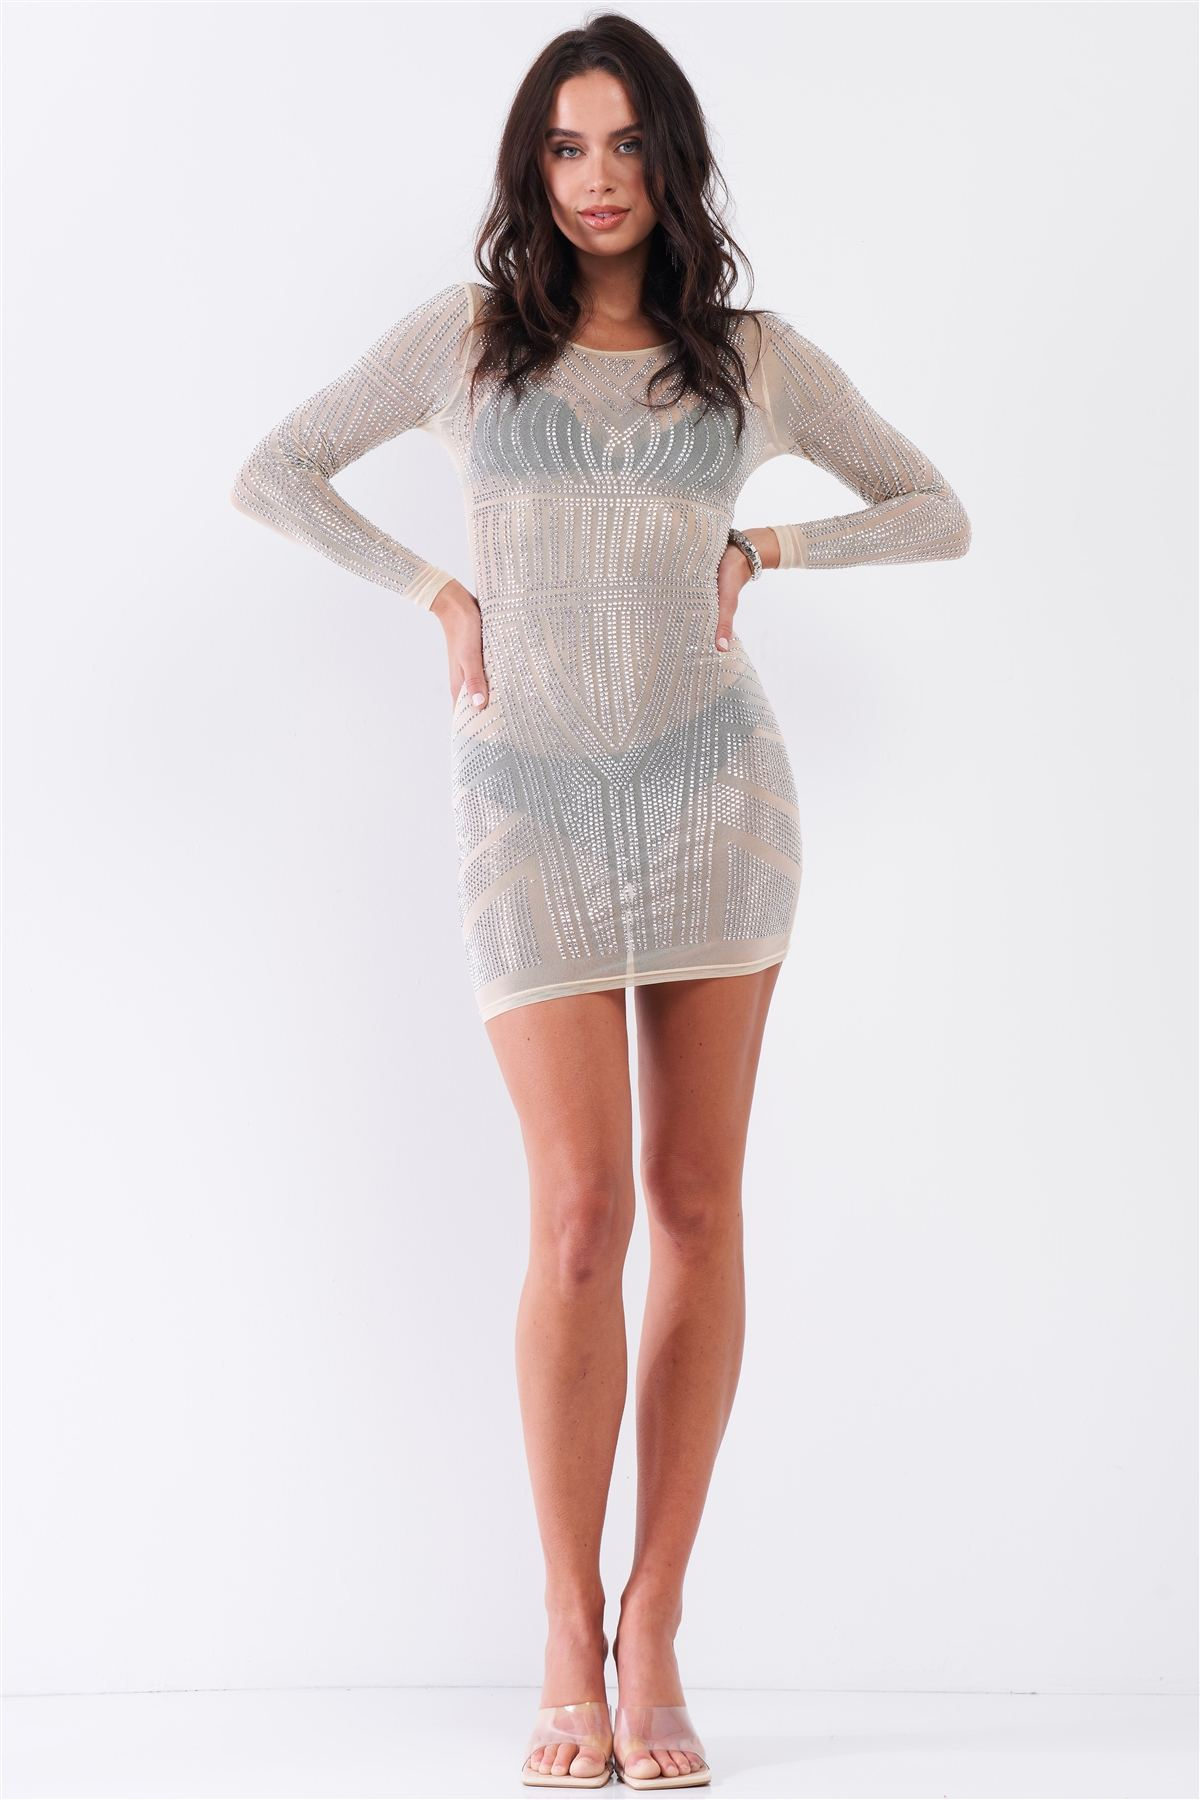 Nude Rhinestone Studded Sheer Bodycon Dress